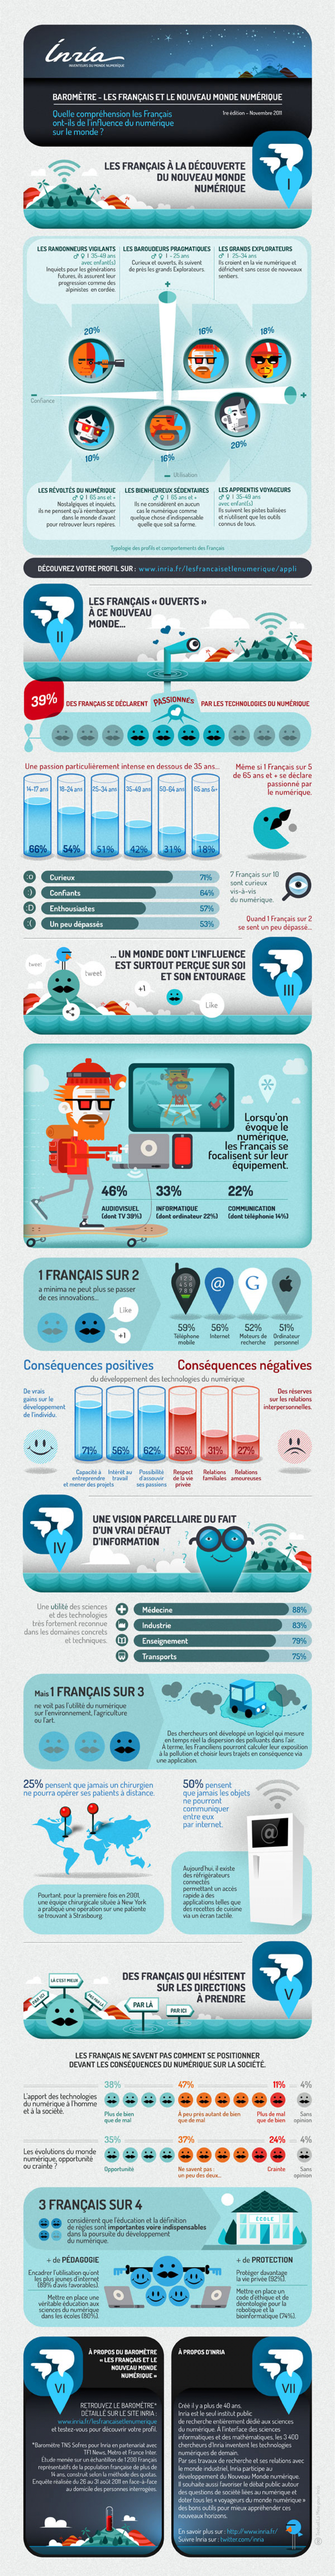 The French and the New Digital World Infographic